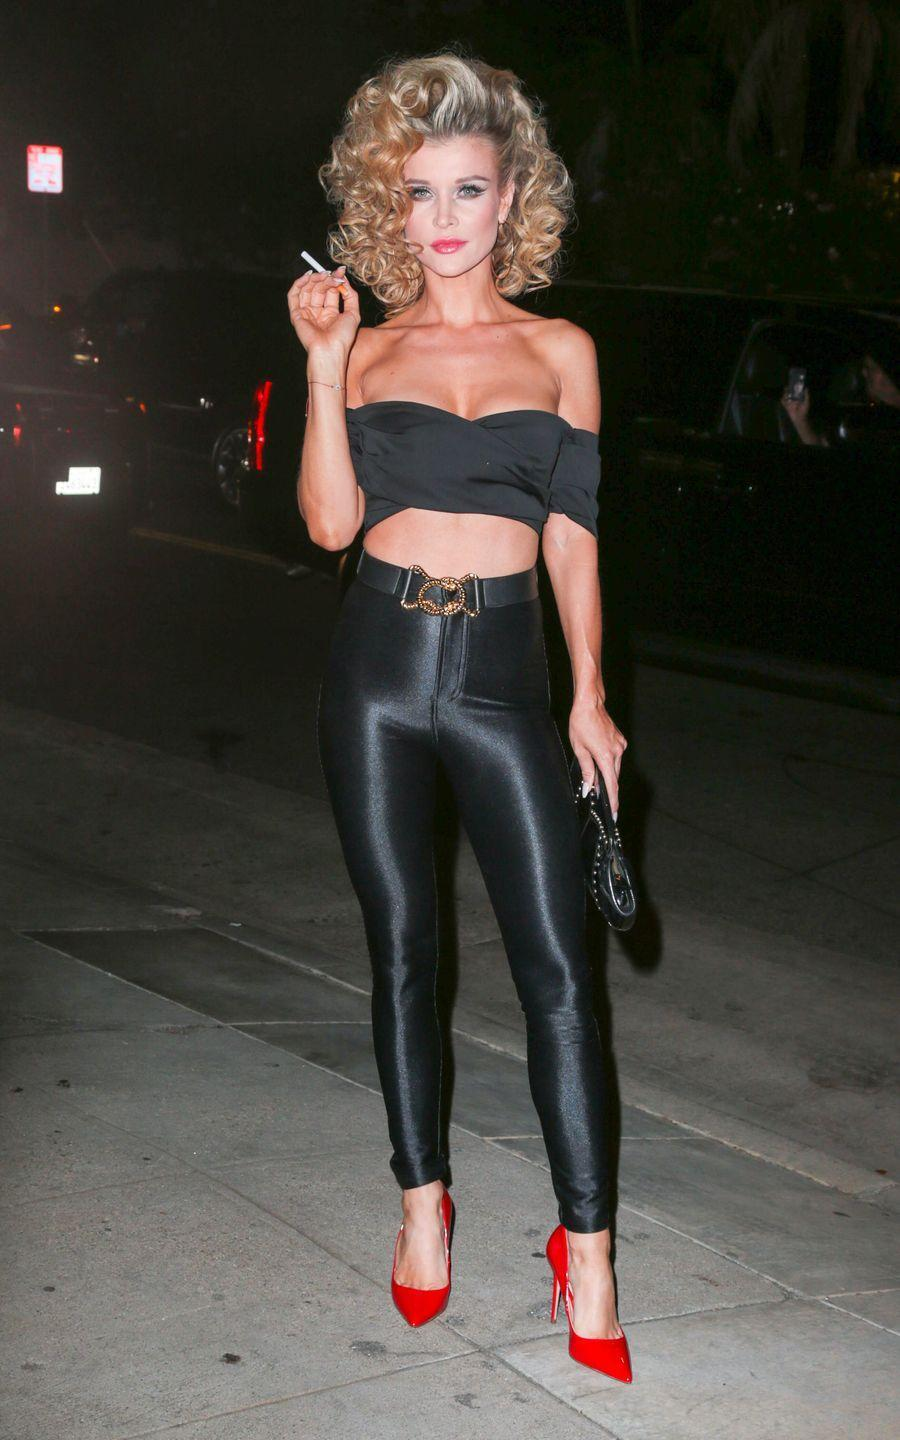 """<p>Sandy from <em>Grease</em> is a Halloween costume staple, and for good reason — it looks great and can usually be thrown together with items you already own. Just pair black leather leggings with a black bustier top and complete the look with a red heels. </p><p><strong>What You'll Need:</strong> <a href=""""https://www.amazon.com/Everbellus-Womens-Leather-Waisted-Leggings/dp/B015IO2VYK?tag=syn-yahoo-20&ascsubtag=%5Bartid%7C10070.g.28166042%5Bsrc%7Cyahoo-us"""" rel=""""nofollow noopener"""" target=""""_blank"""" data-ylk=""""slk:black leather leggings"""" class=""""link rapid-noclick-resp"""">black leather leggings</a>, <a href=""""https://www.amazon.com/Womens-Strapless-Shoulder-Ruffled-T-shirt/dp/B06Y43FQCF?tag=syn-yahoo-20&ascsubtag=%5Bartid%7C10070.g.28166042%5Bsrc%7Cyahoo-us"""" rel=""""nofollow noopener"""" target=""""_blank"""" data-ylk=""""slk:black top"""" class=""""link rapid-noclick-resp"""">black top</a>, and <a href=""""https://www.amazon.com/DREAM-PAIRS-Classic-Fashion-Pointed/dp/B0785HTBLT?tag=syn-yahoo-20&ascsubtag=%5Bartid%7C10070.g.28166042%5Bsrc%7Cyahoo-us"""" rel=""""nofollow noopener"""" target=""""_blank"""" data-ylk=""""slk:red heels"""" class=""""link rapid-noclick-resp"""">red heels</a></p>"""